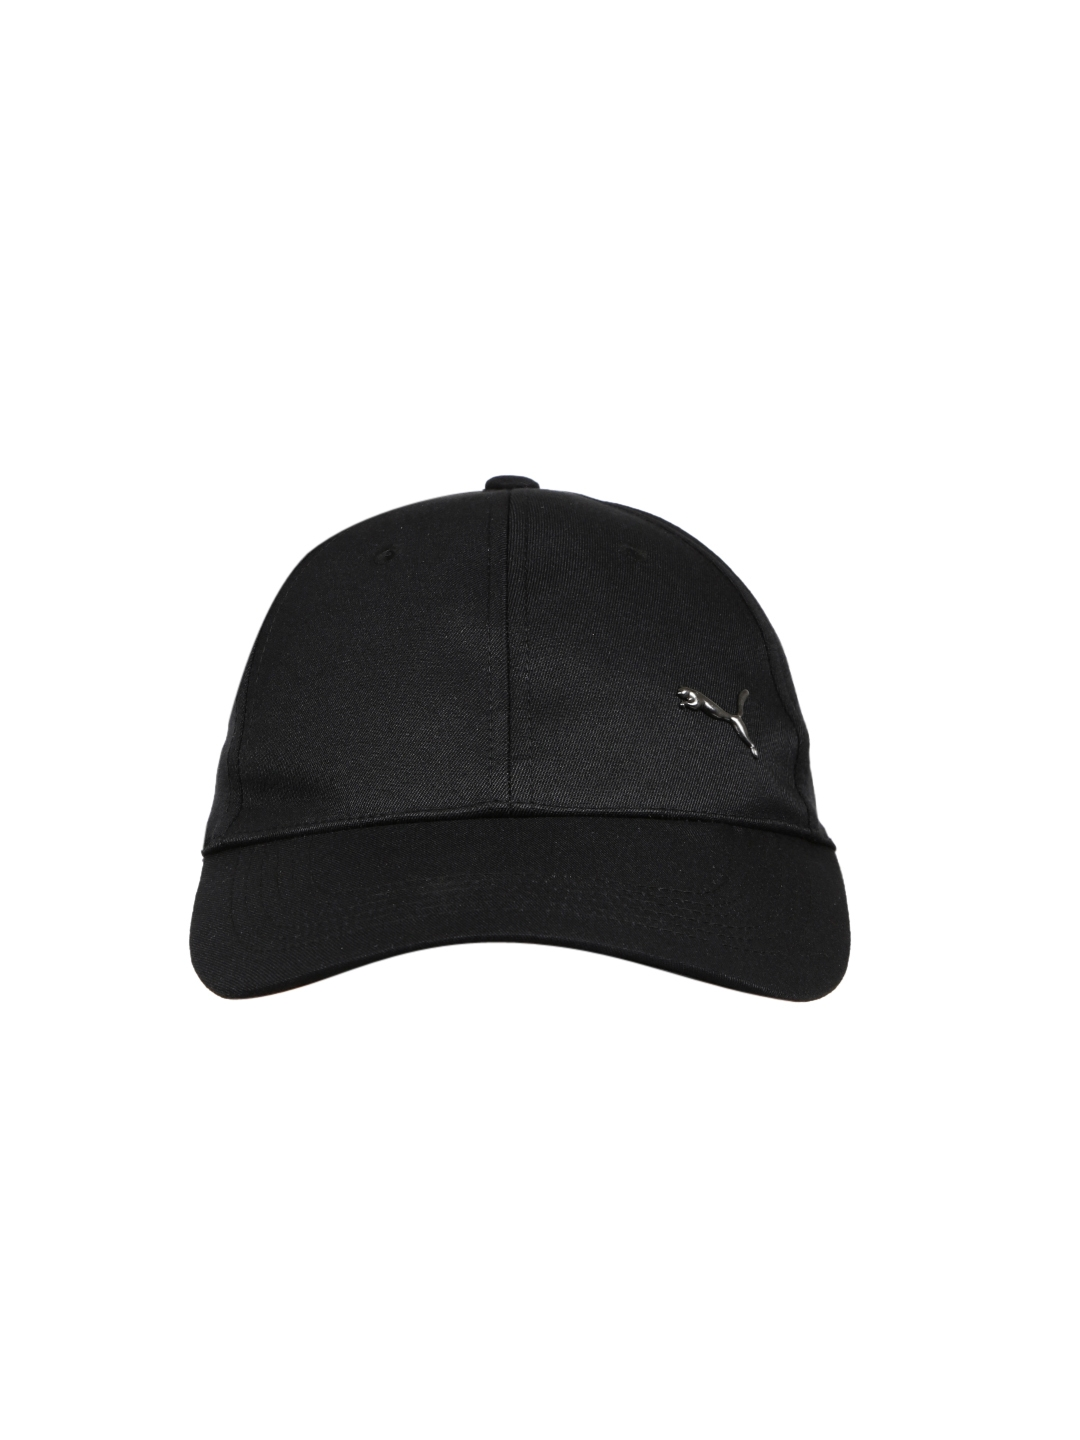 baccfd8eafb Buy Puma Unisex Black Solid Metal Cat Baseball Cap - Caps for Unisex ...